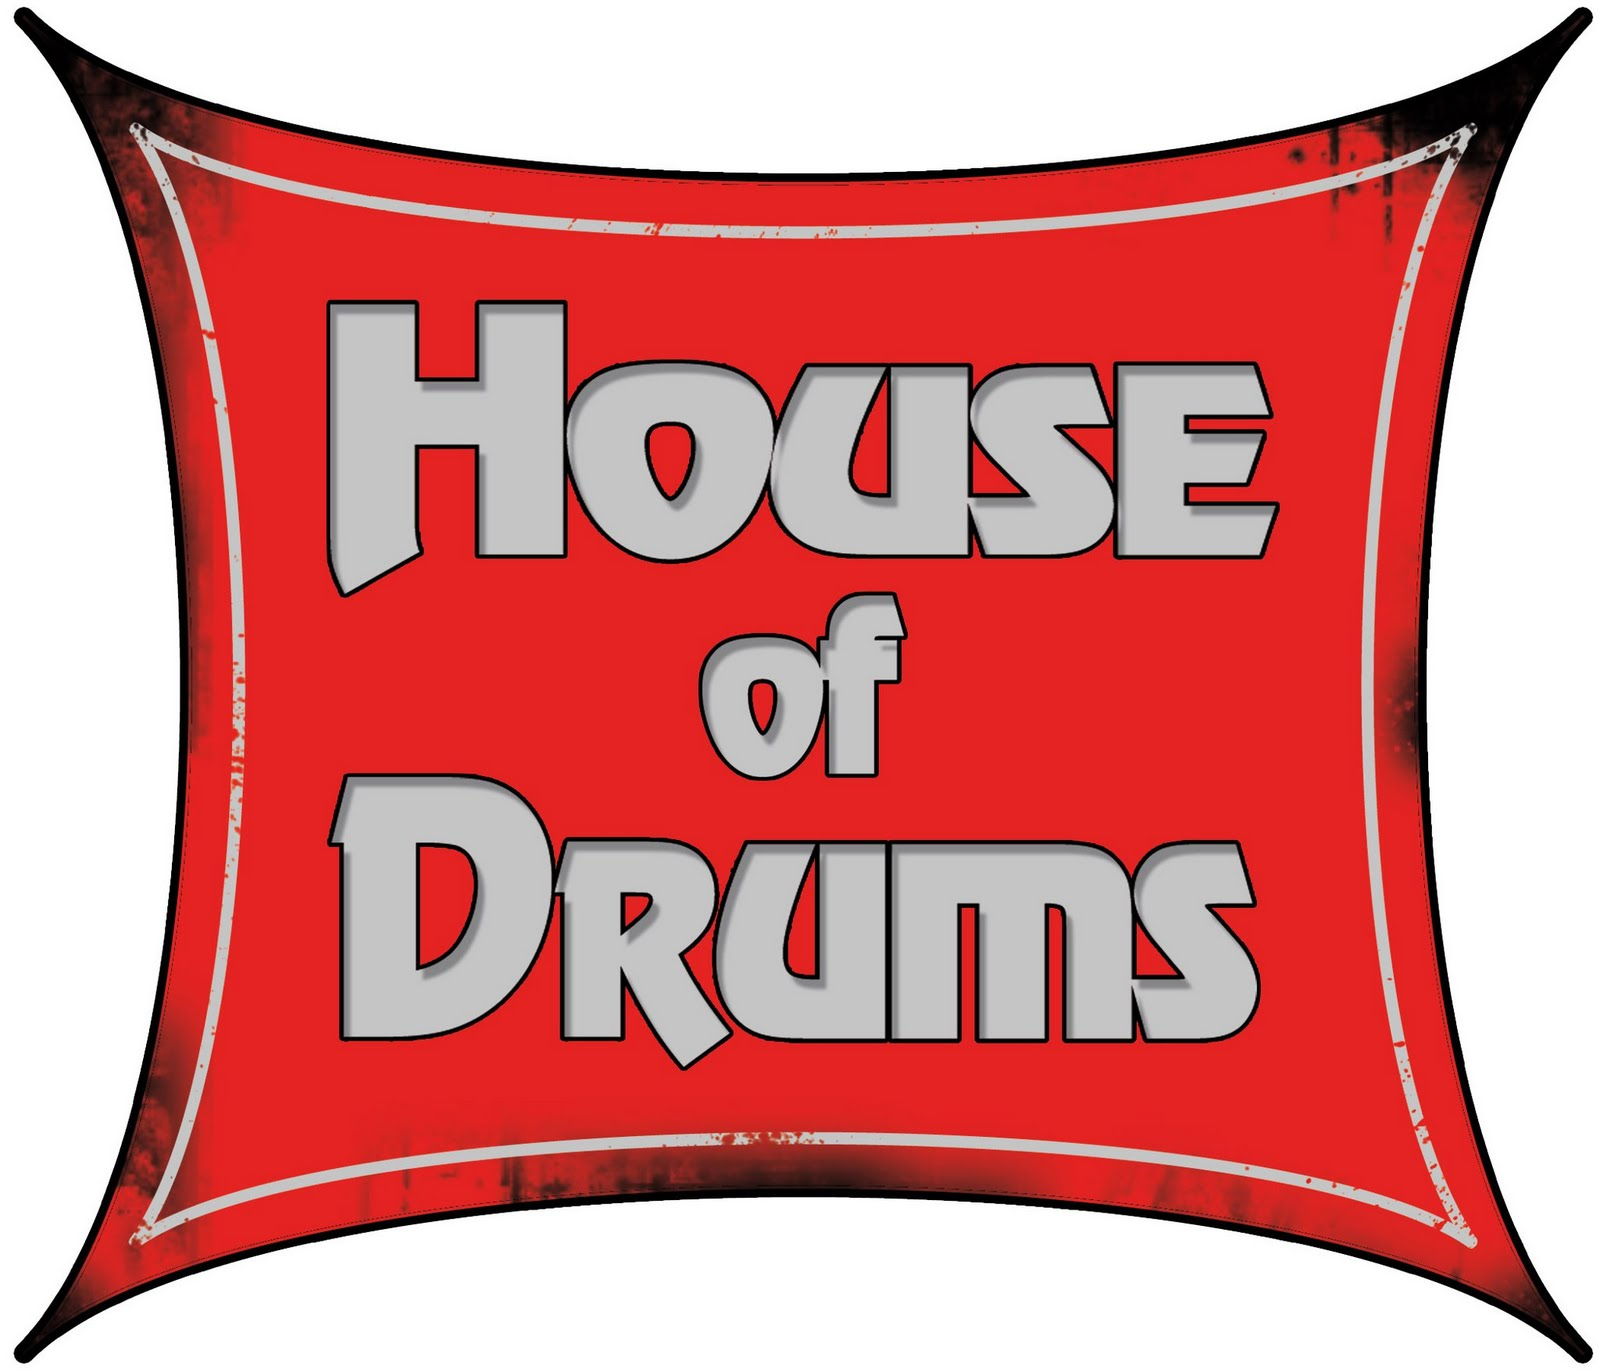 FEATURED ARTISTS: House of Drums.